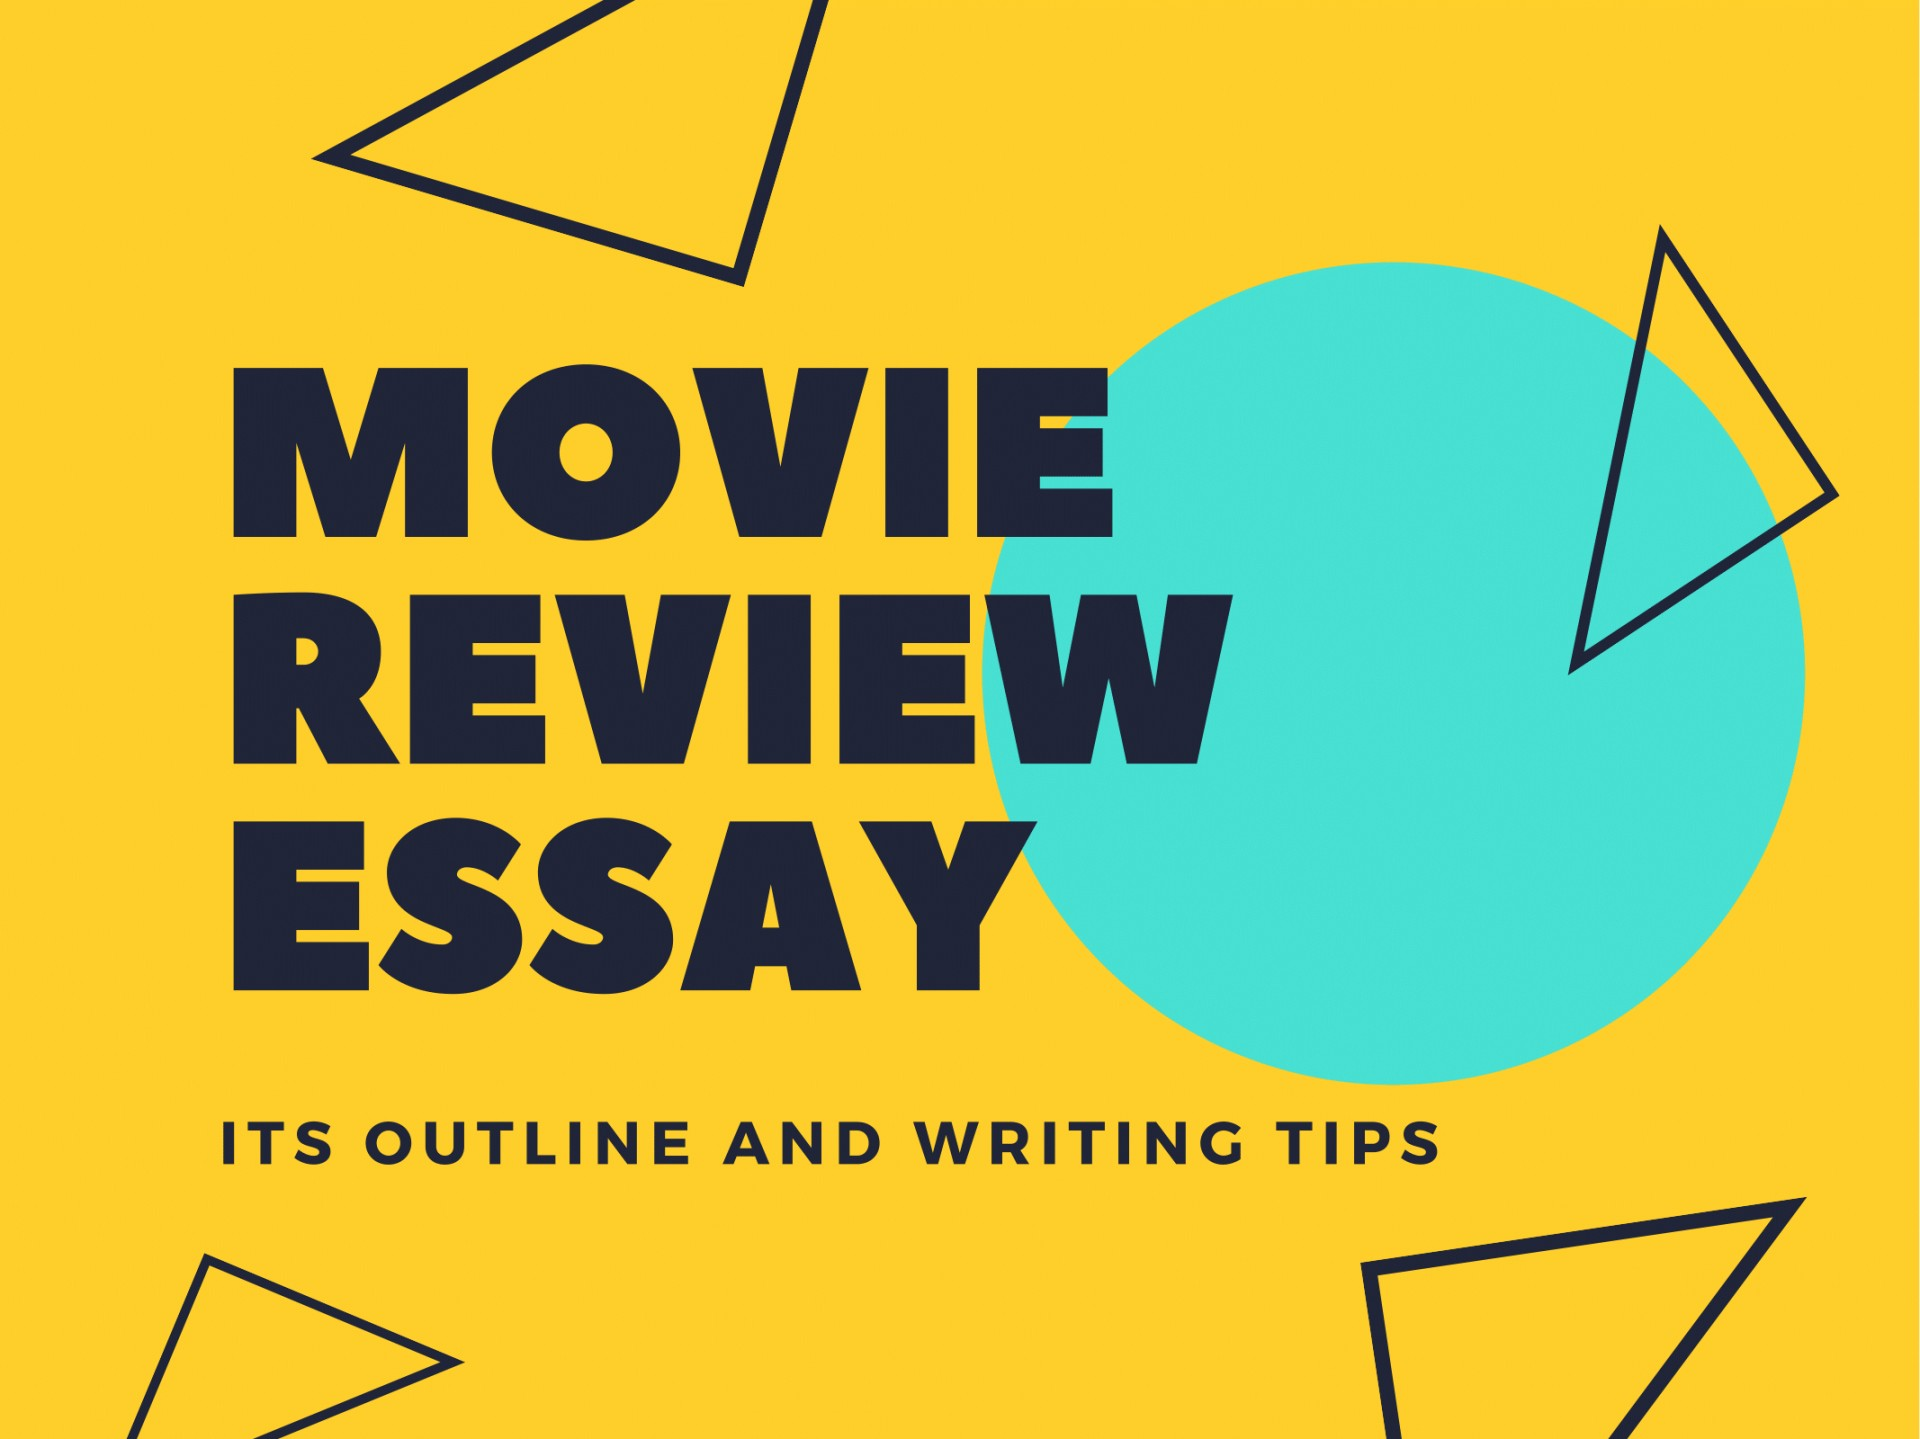 013 Essay Example Movie Guide Exceptional Review Thesis Statement Samples 1920